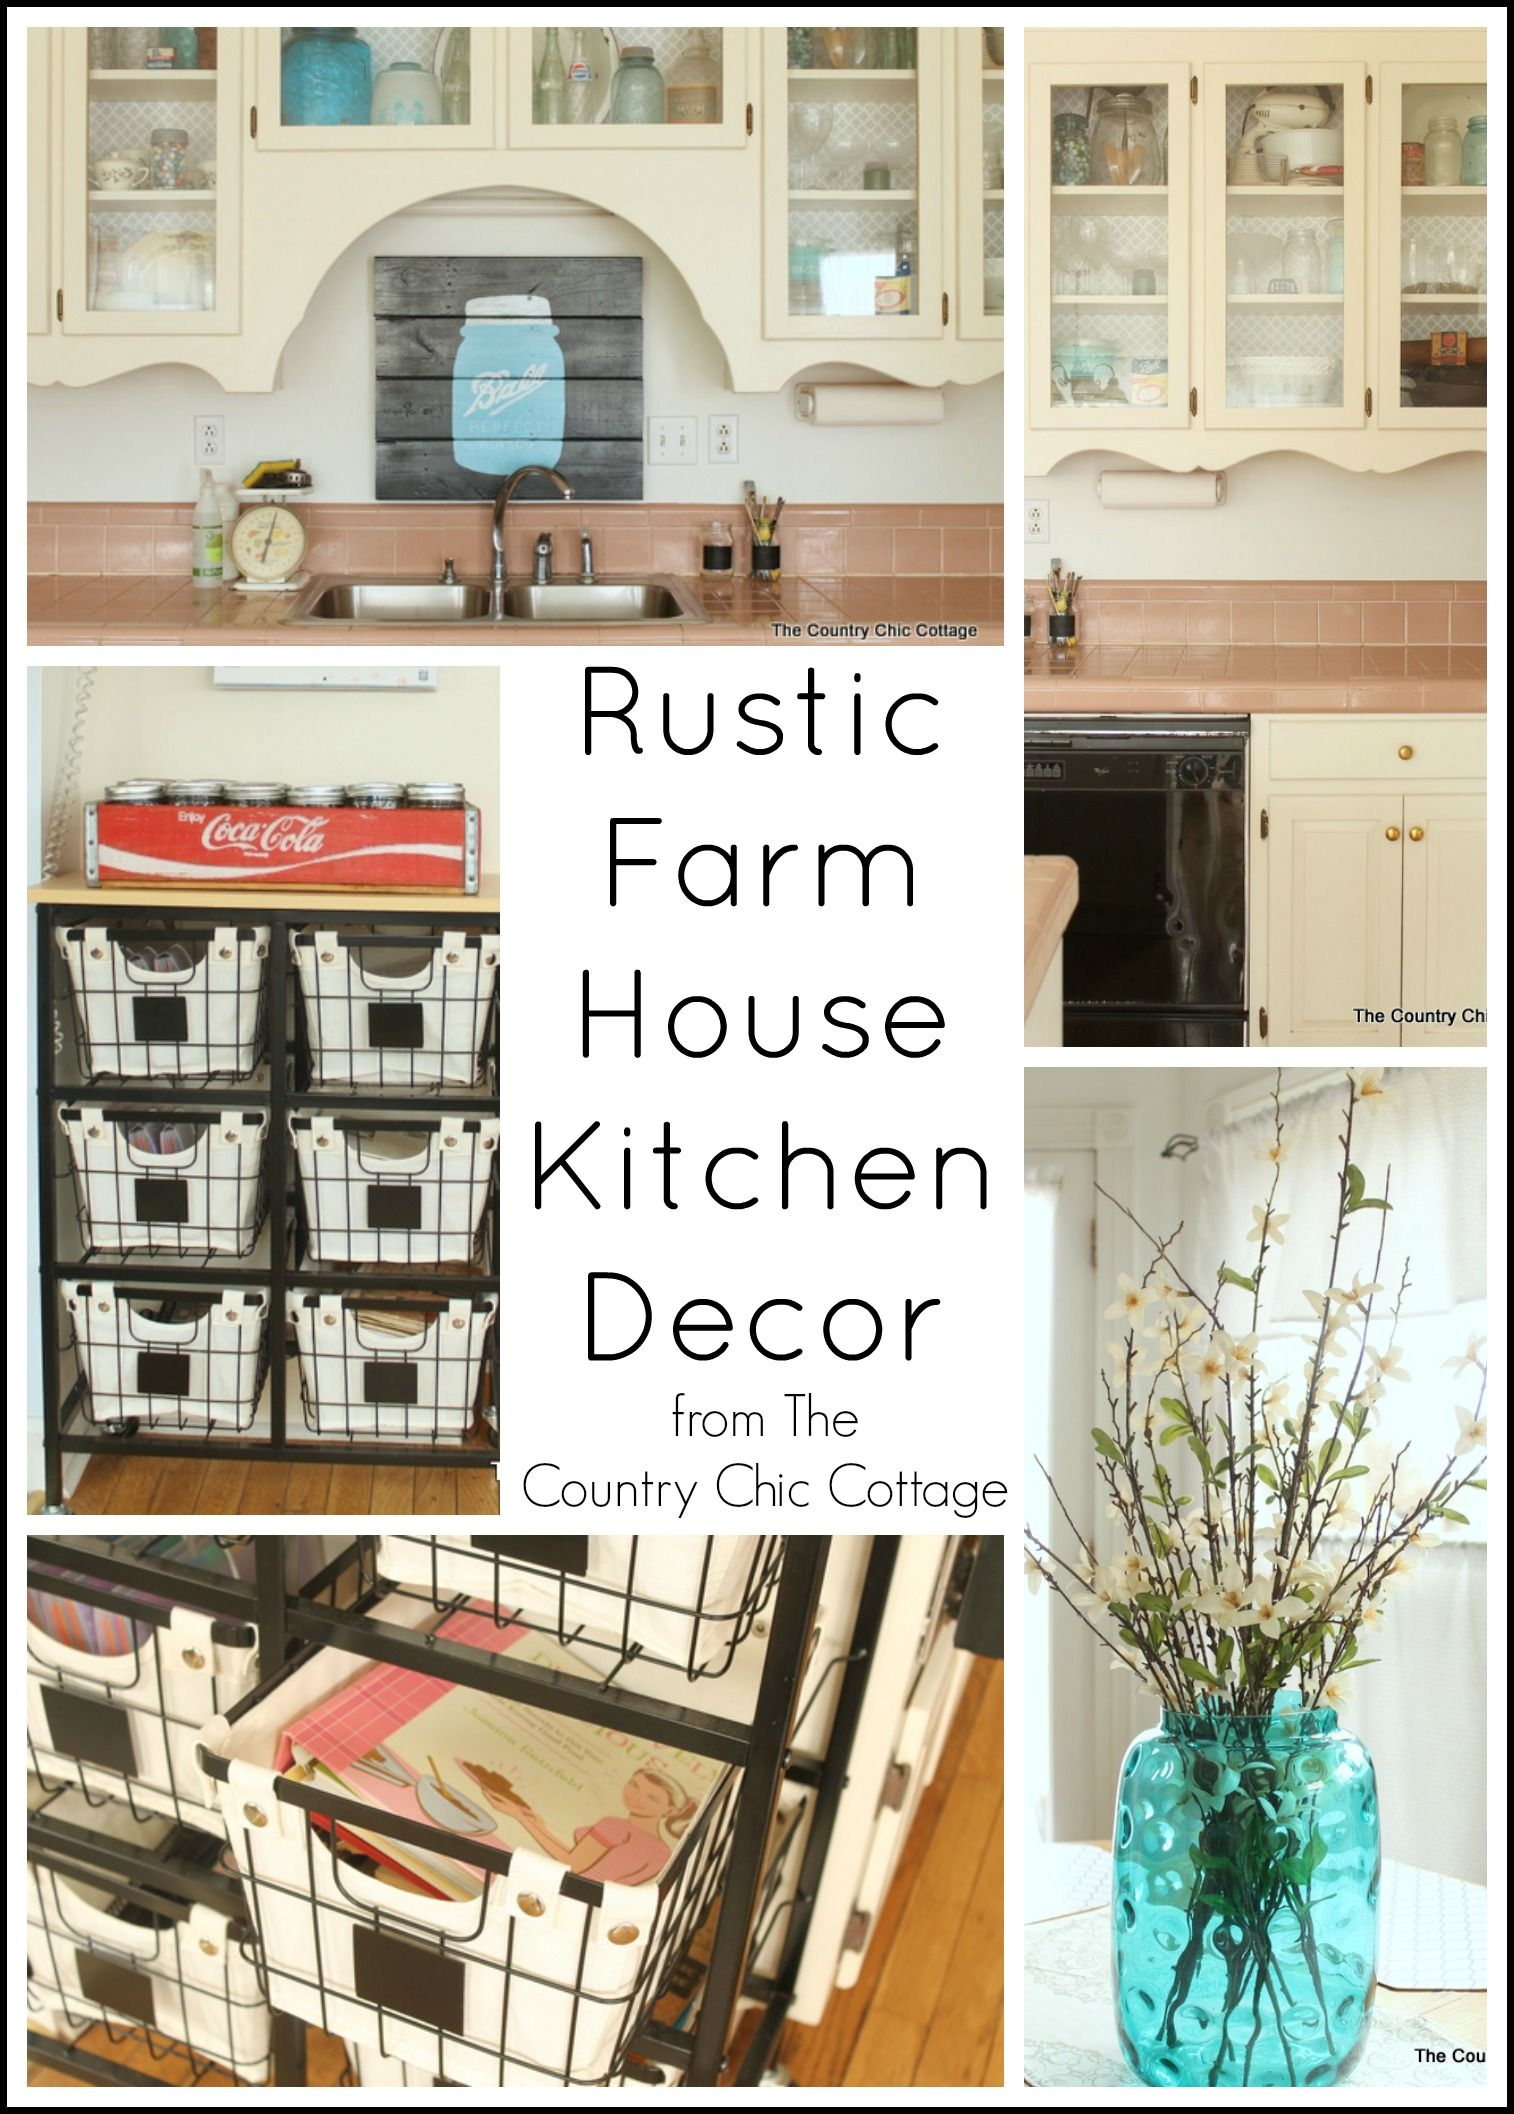 Rustic Kitchen Decor on Pinterest